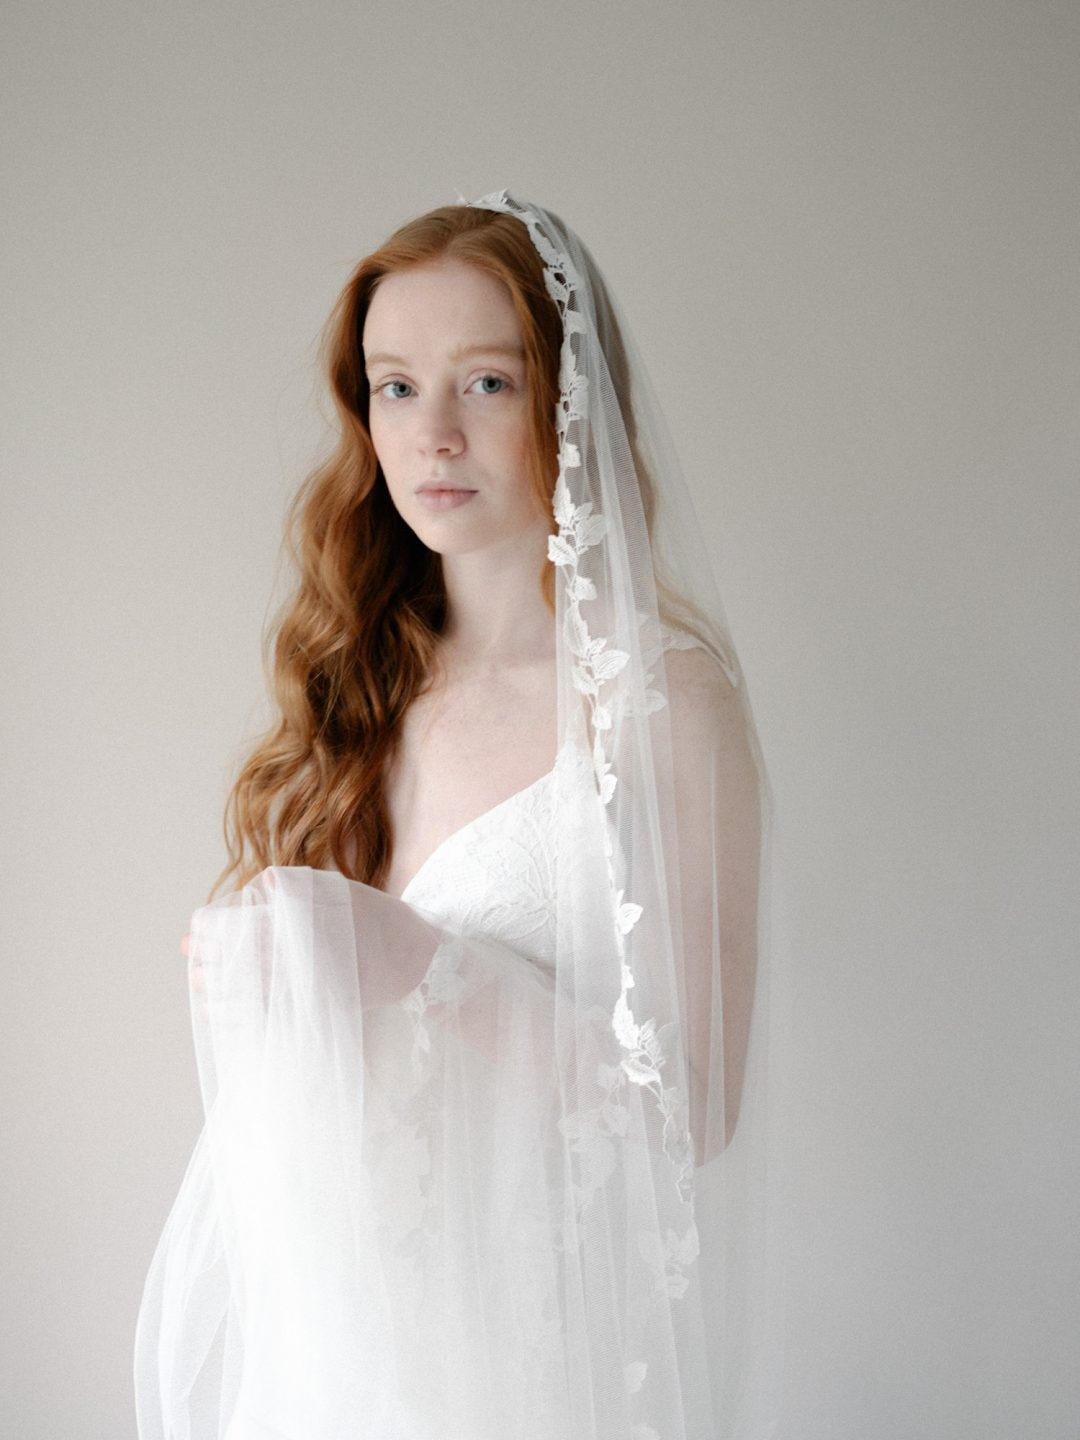 Style 801 - LACE MANTILLA BRIDAL VEIL by SIBO Designs Couture www.sibodesigns.com